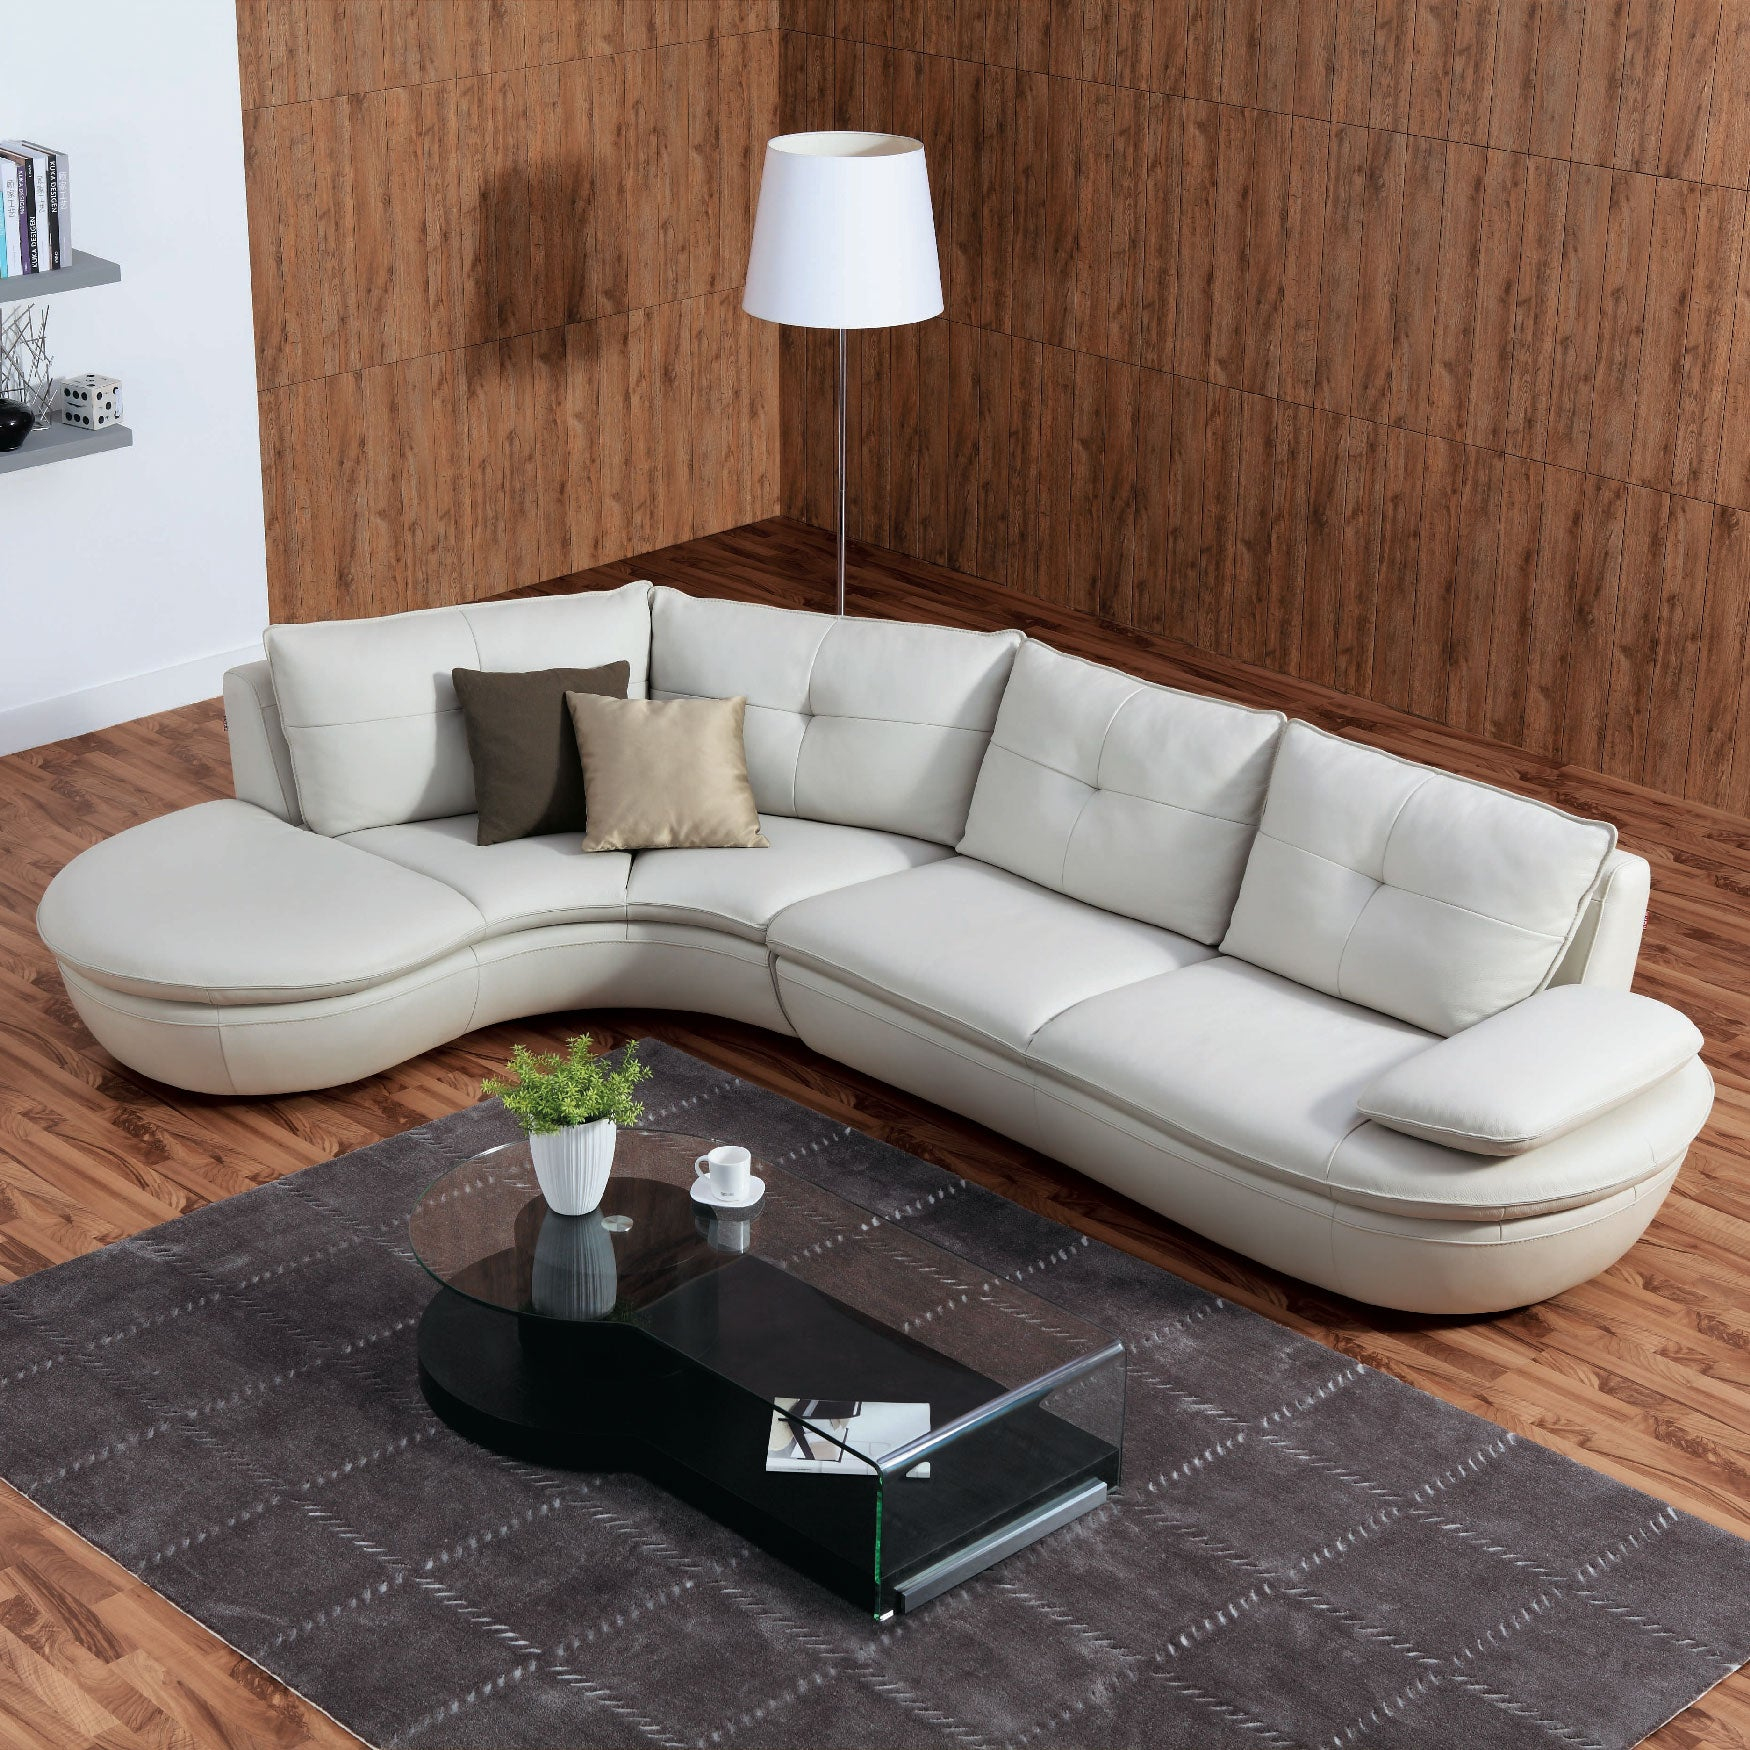 couches italian sofas tremendous jpg the couch beautiful of natuzzi full design sofa p pictures leather size